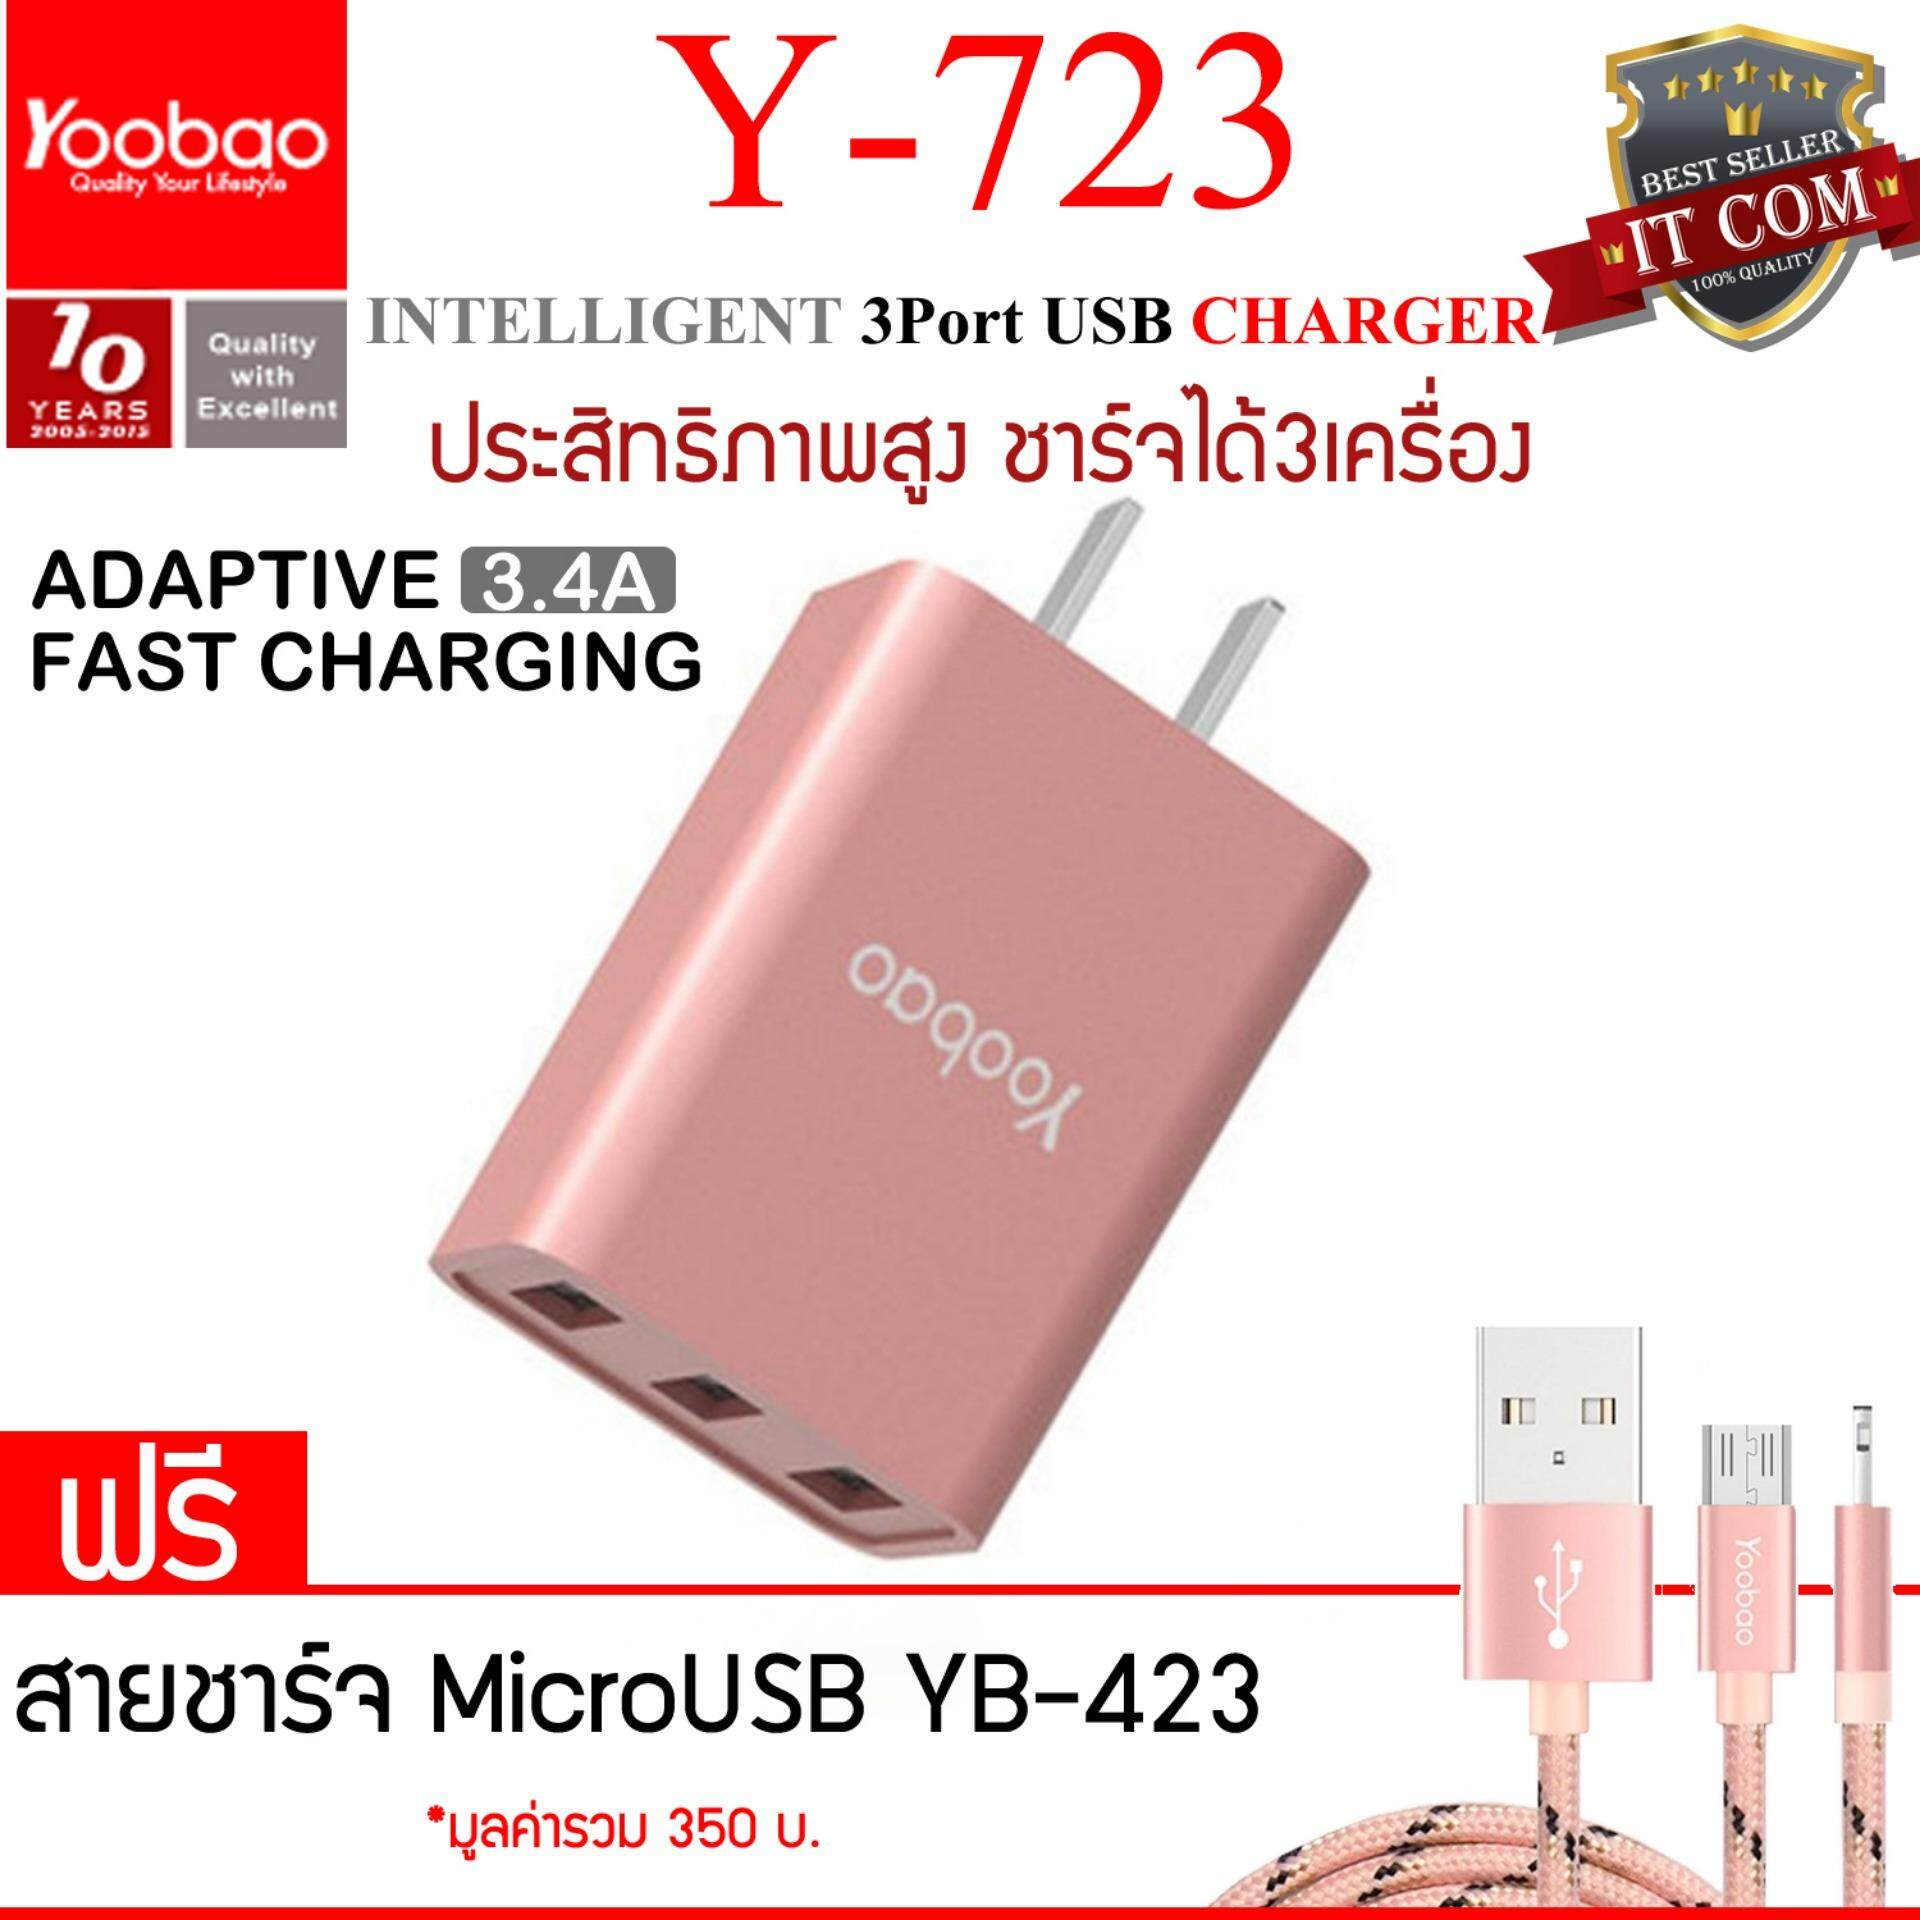 Yoobao Y-723 (3.4A) Intelligent 3 Port USB Charger Intelligent Current-matching + สายชาร์จ YB-423 คละสี